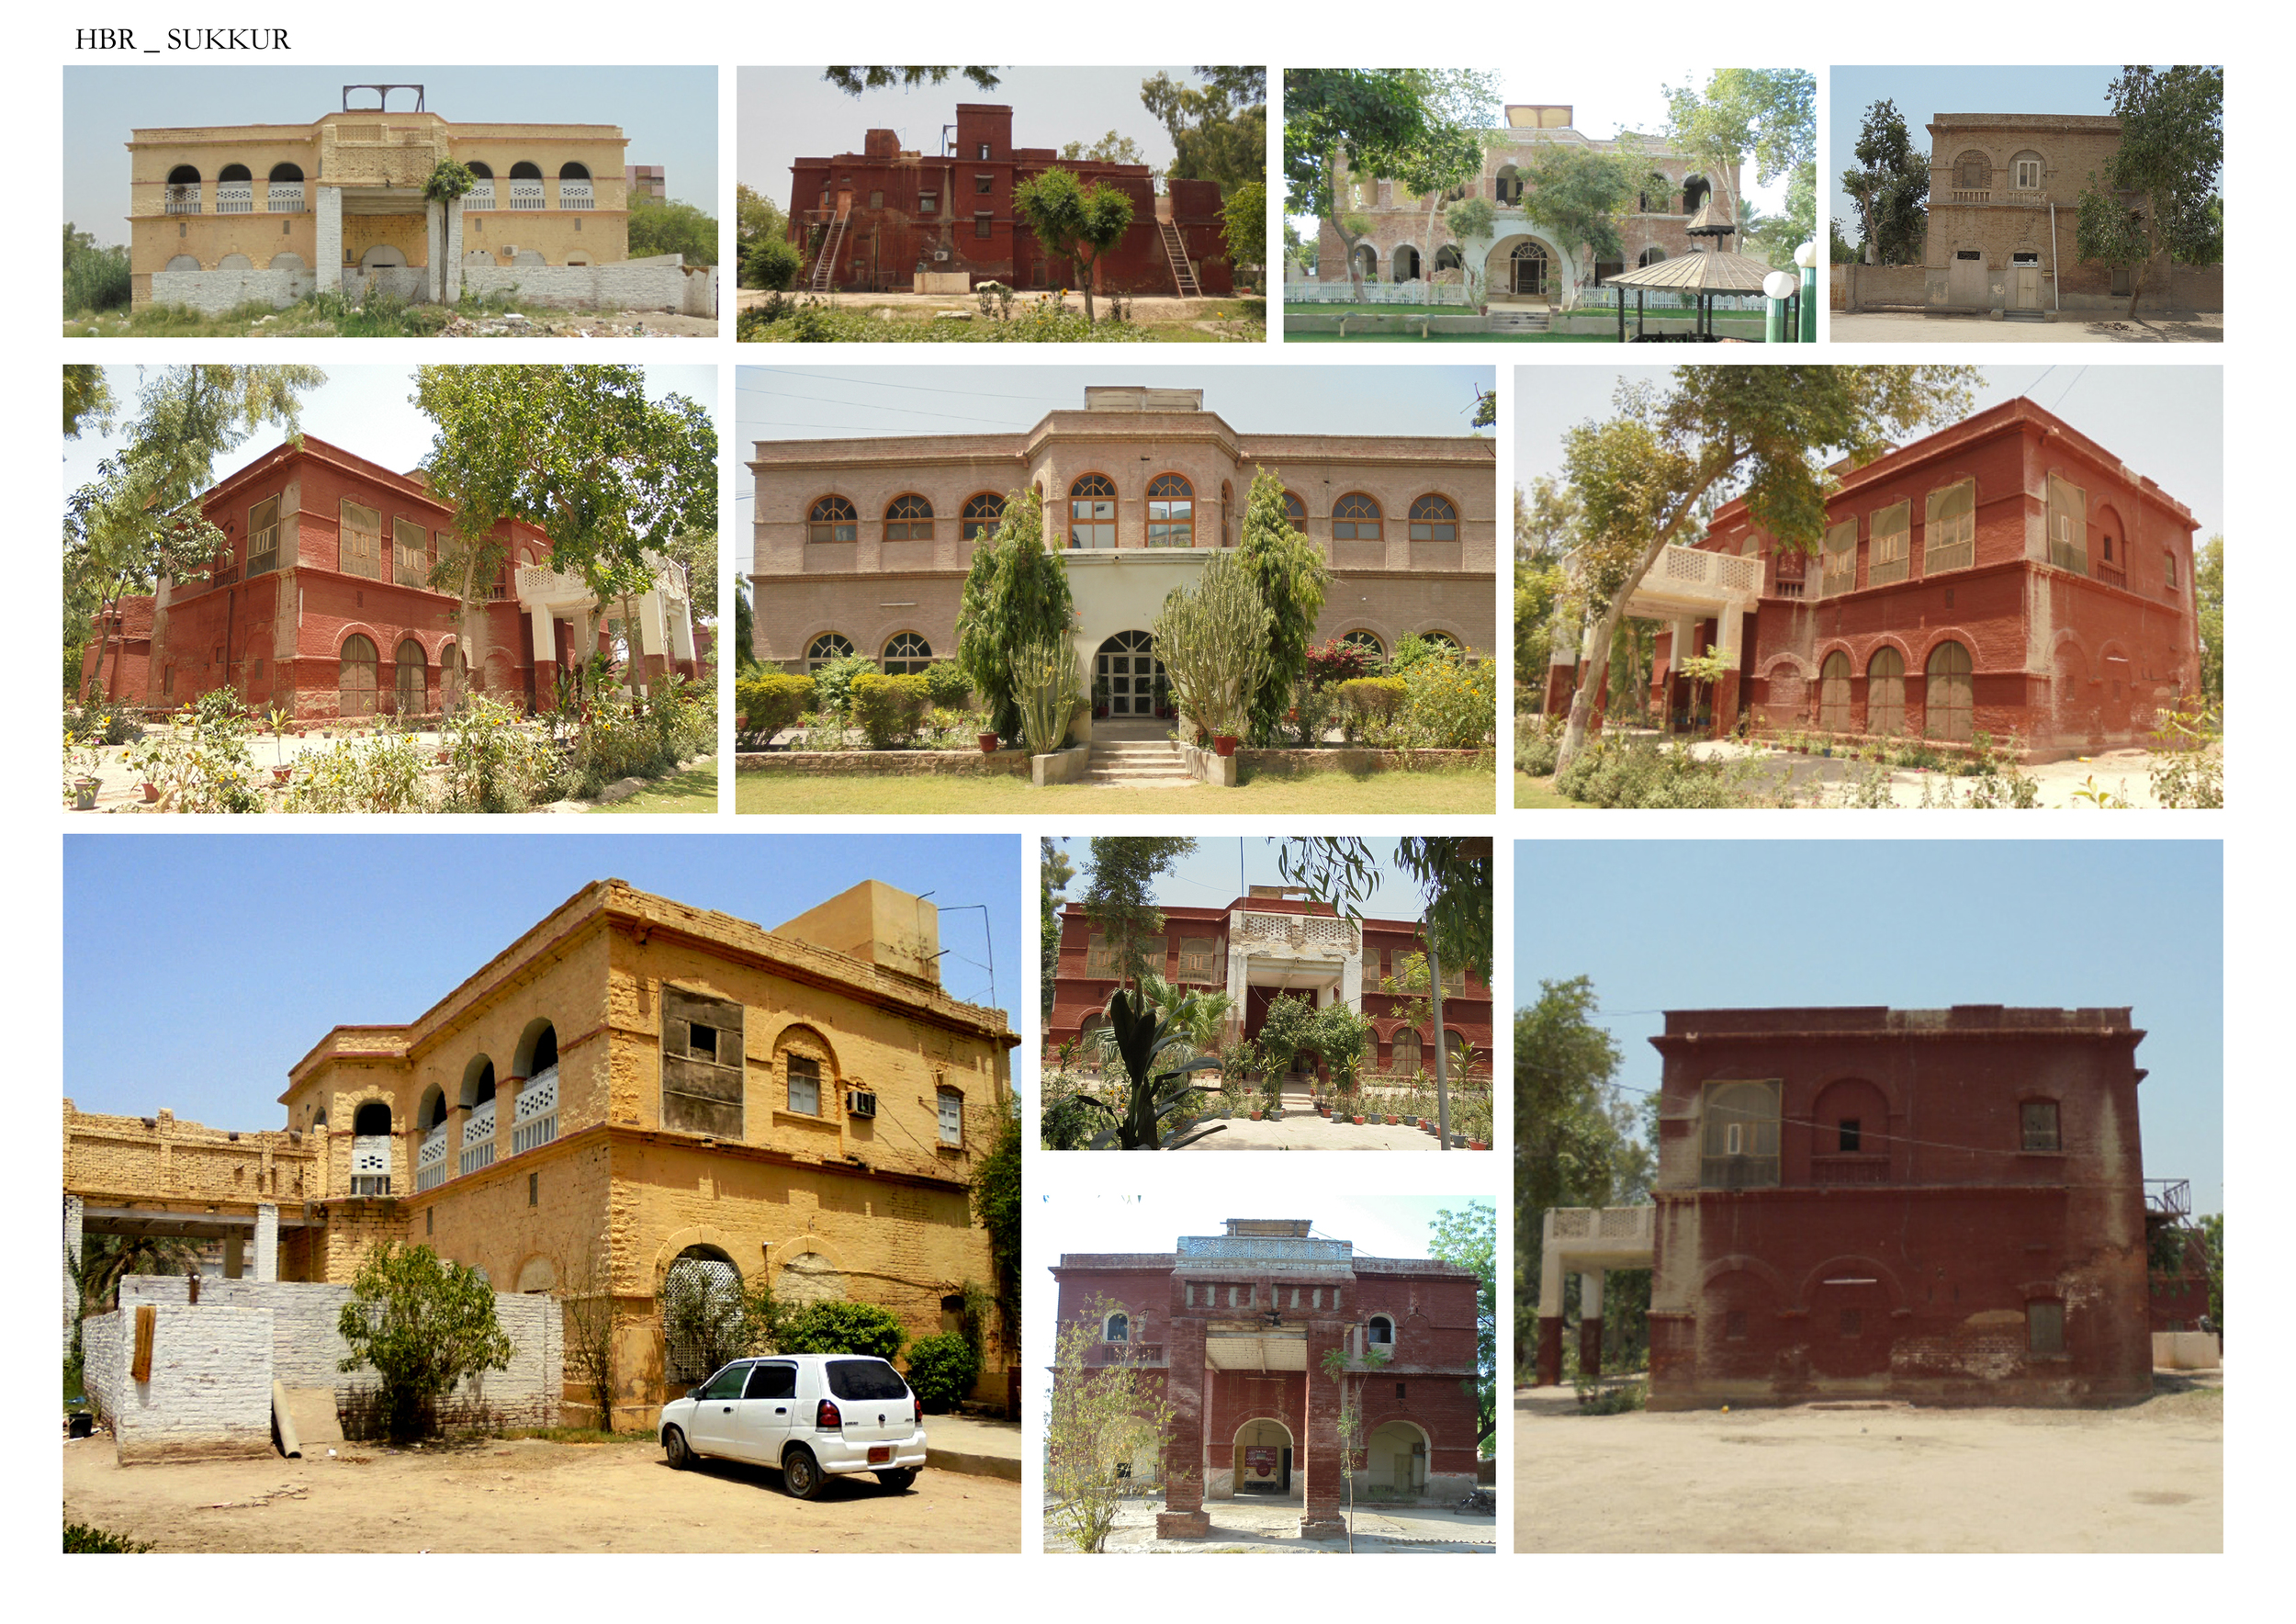 The Sukkur Irrigation Colony is laid out on a grid plan which consisted of 52 bungalows and promenade out of which only 17 are left standing. The occupants of the bungalows are either government or privately owned. These 600-1000 square foot bungalows typology consists of semi-open corridors, porch, arched windows and arched corridors.